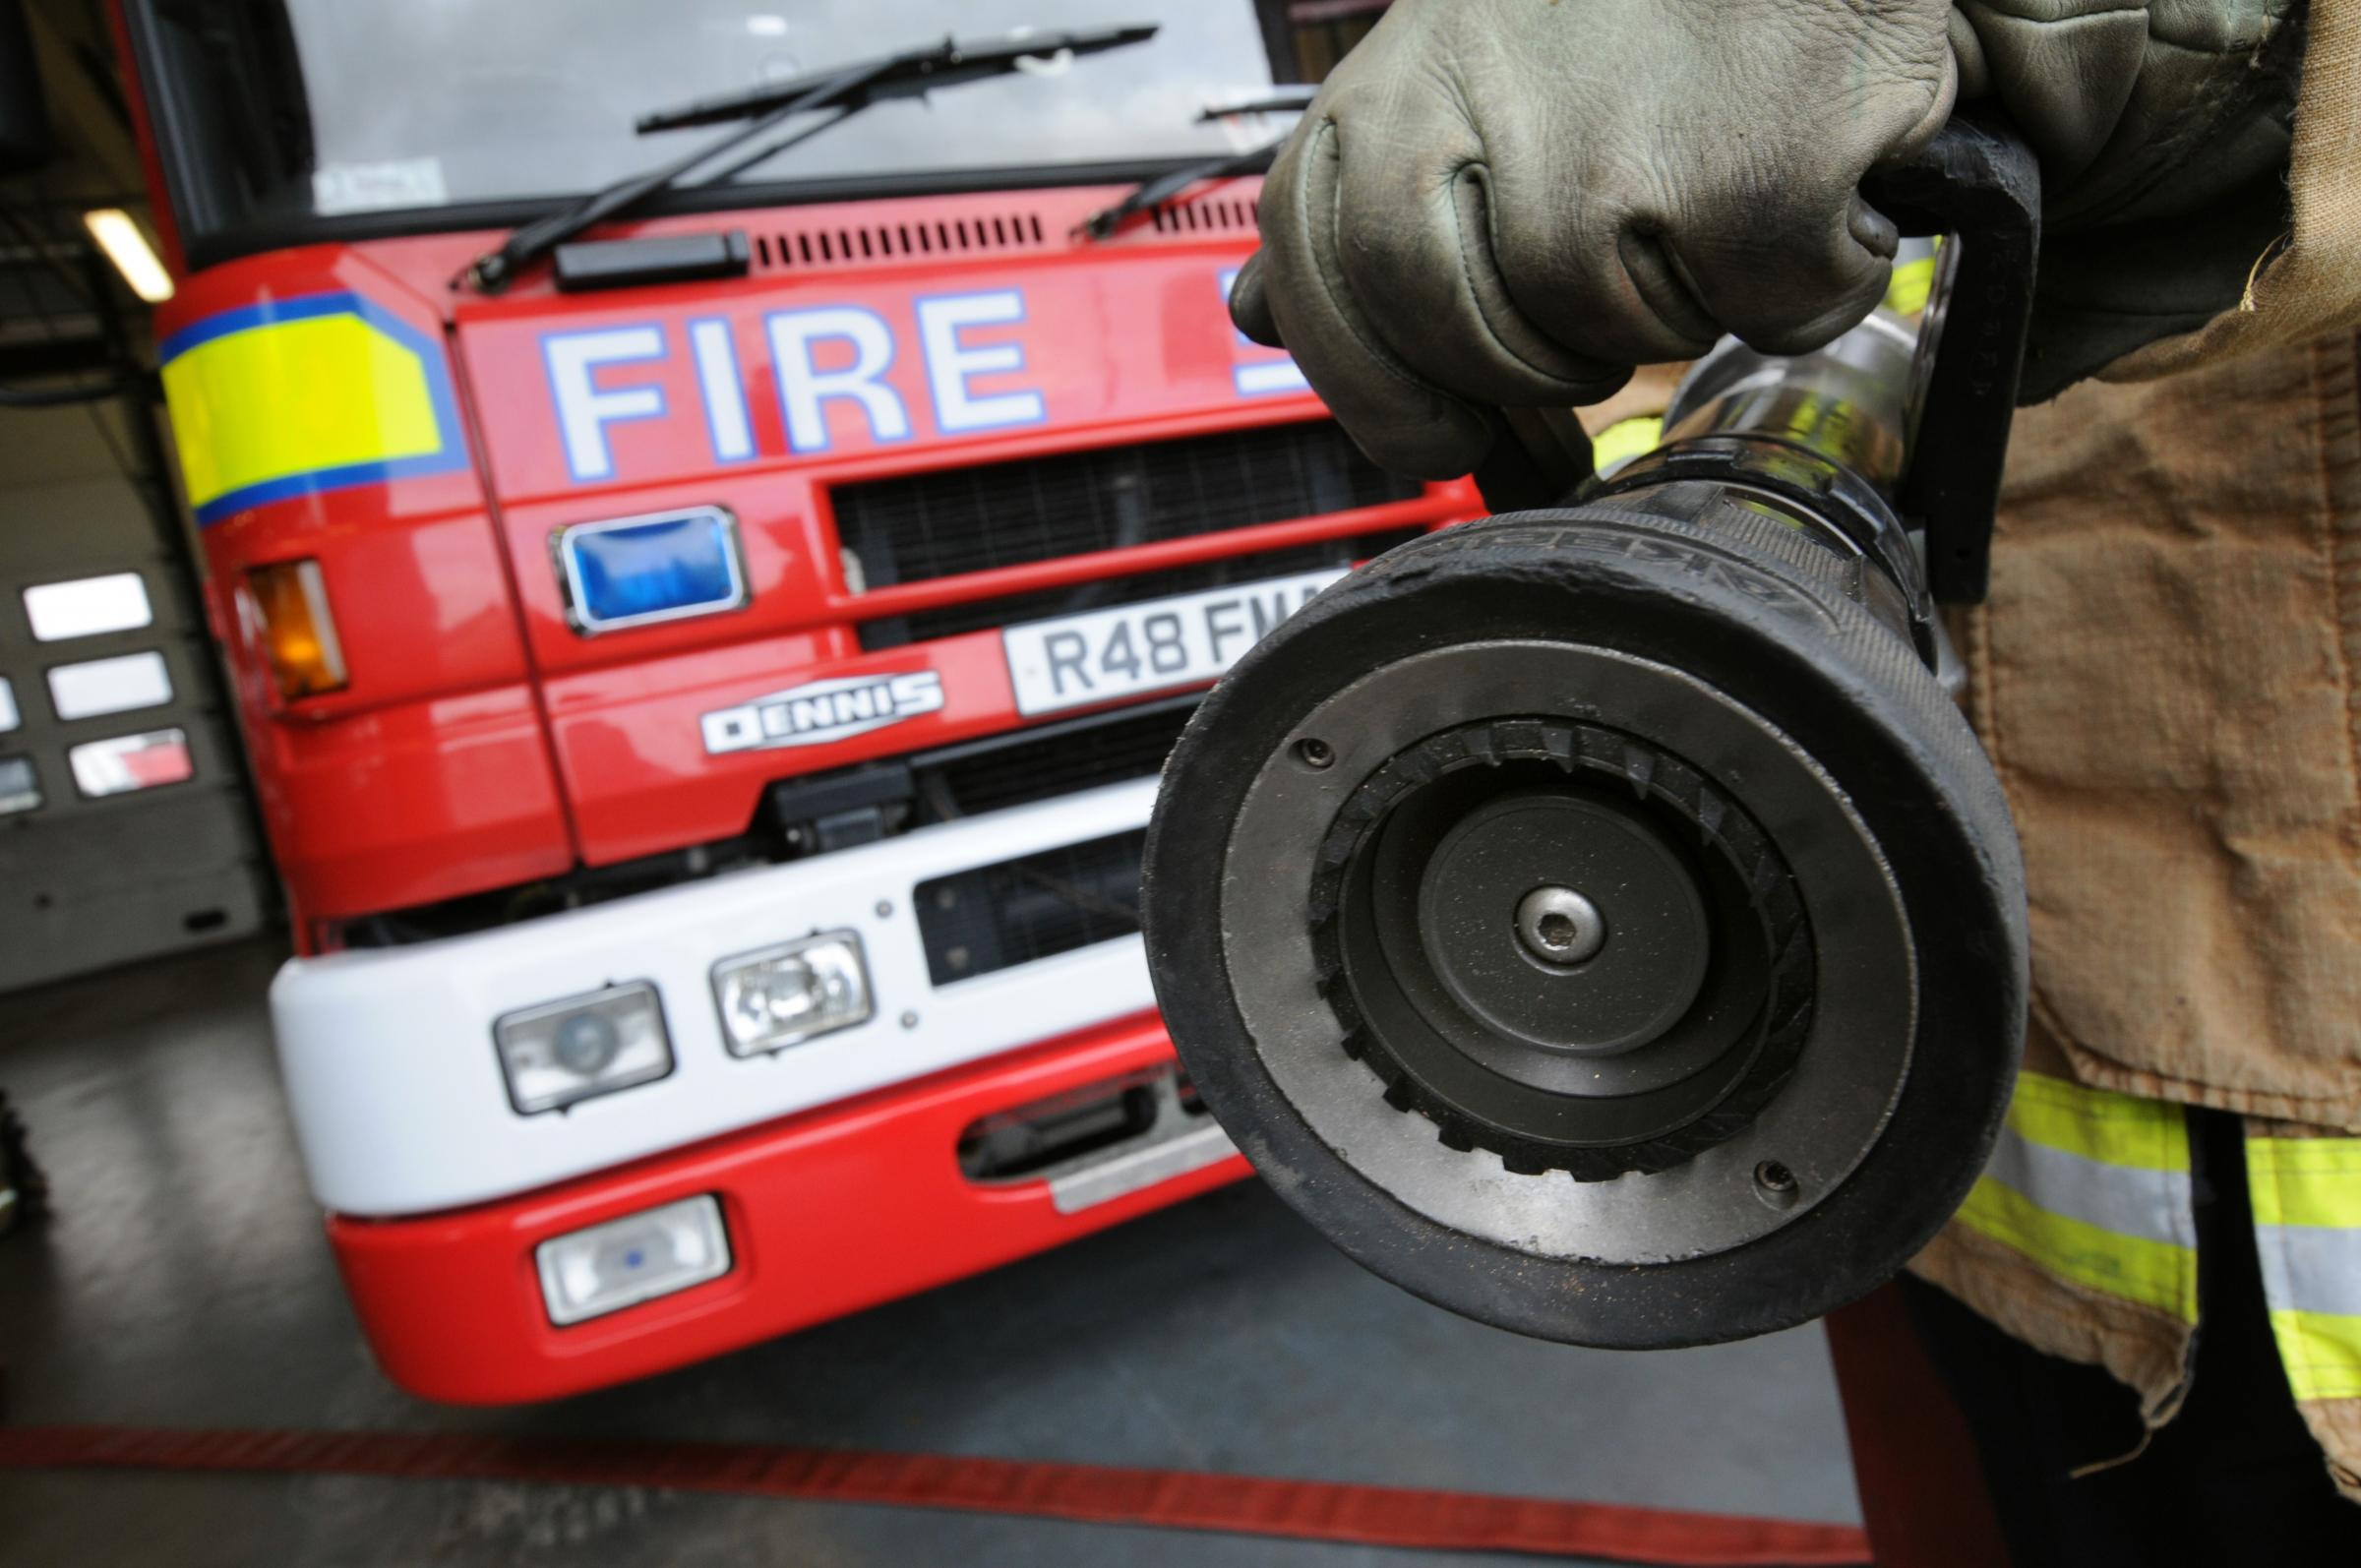 Firefighters tackle fire in car compound on Finlan Road in Widnes